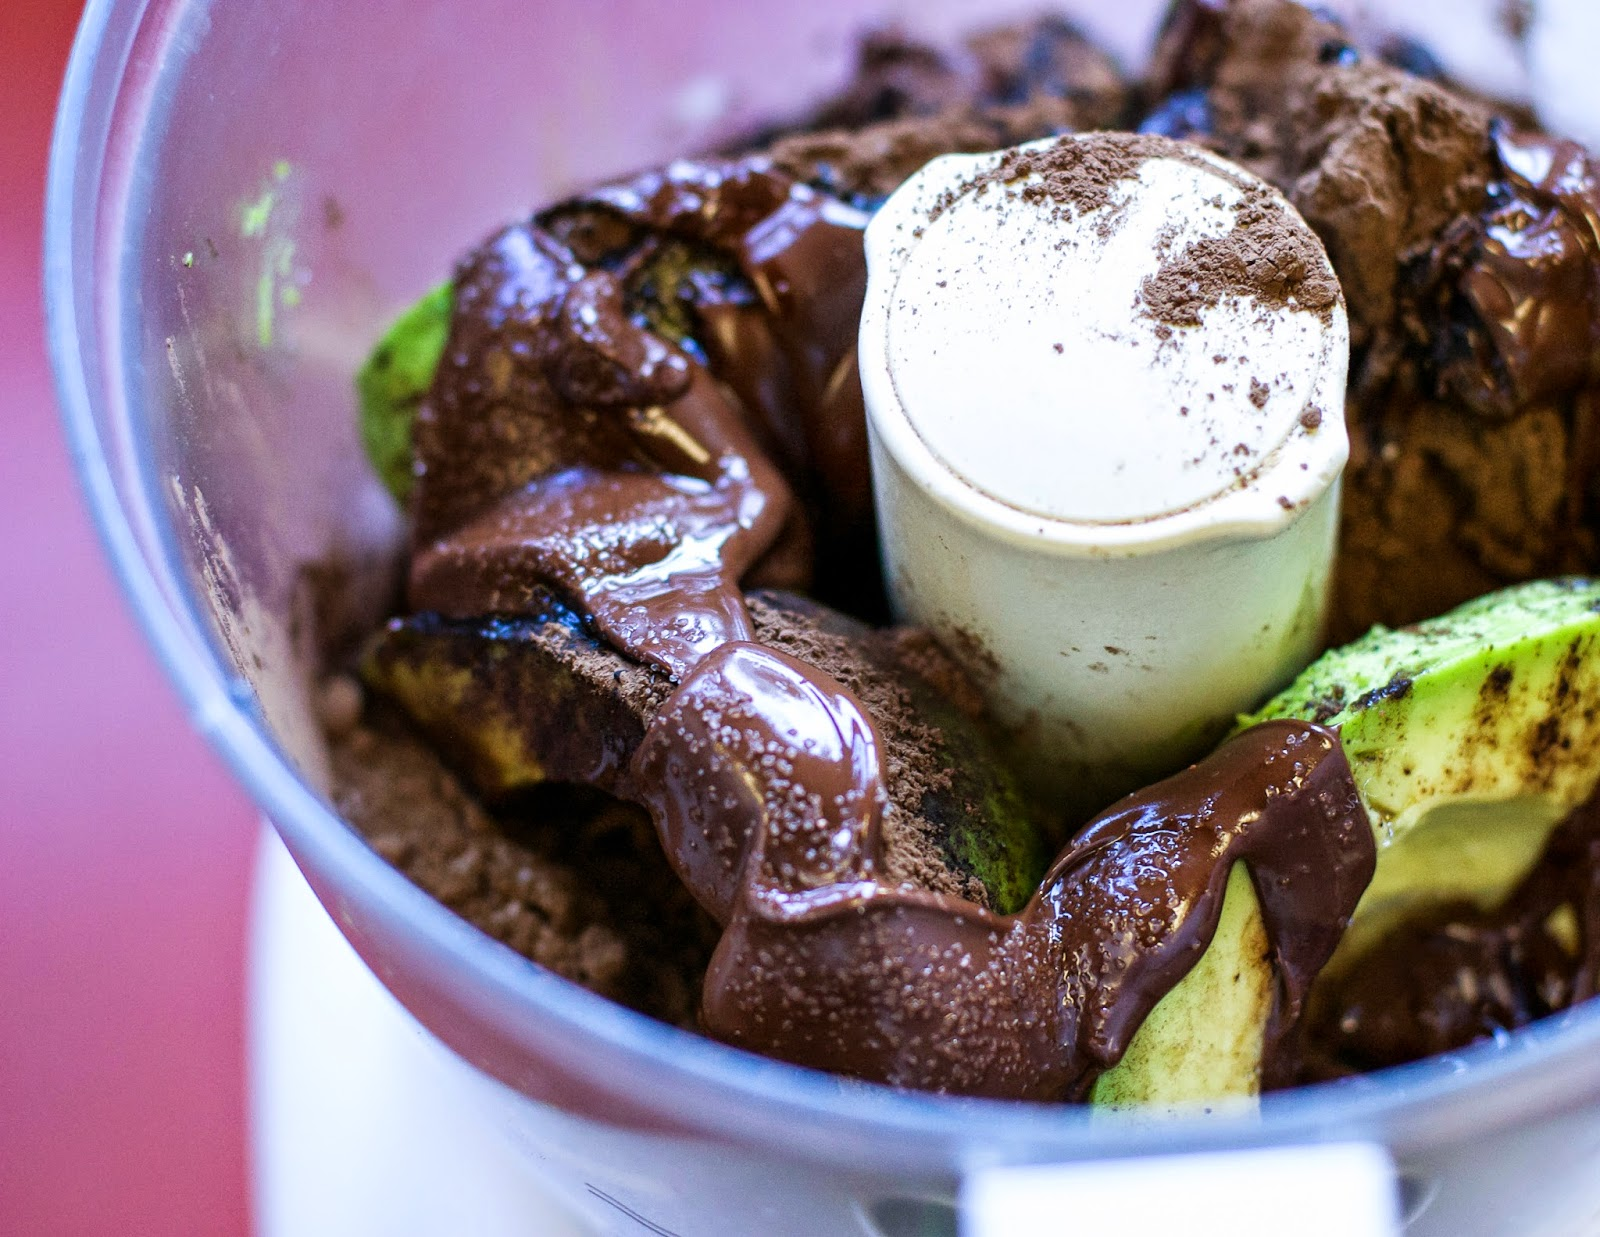 chocolate, mousse, pudding, avocado, chili, ginger, mint, healthy, vegan, gluten-free, easy, quick, holistic, nourishing